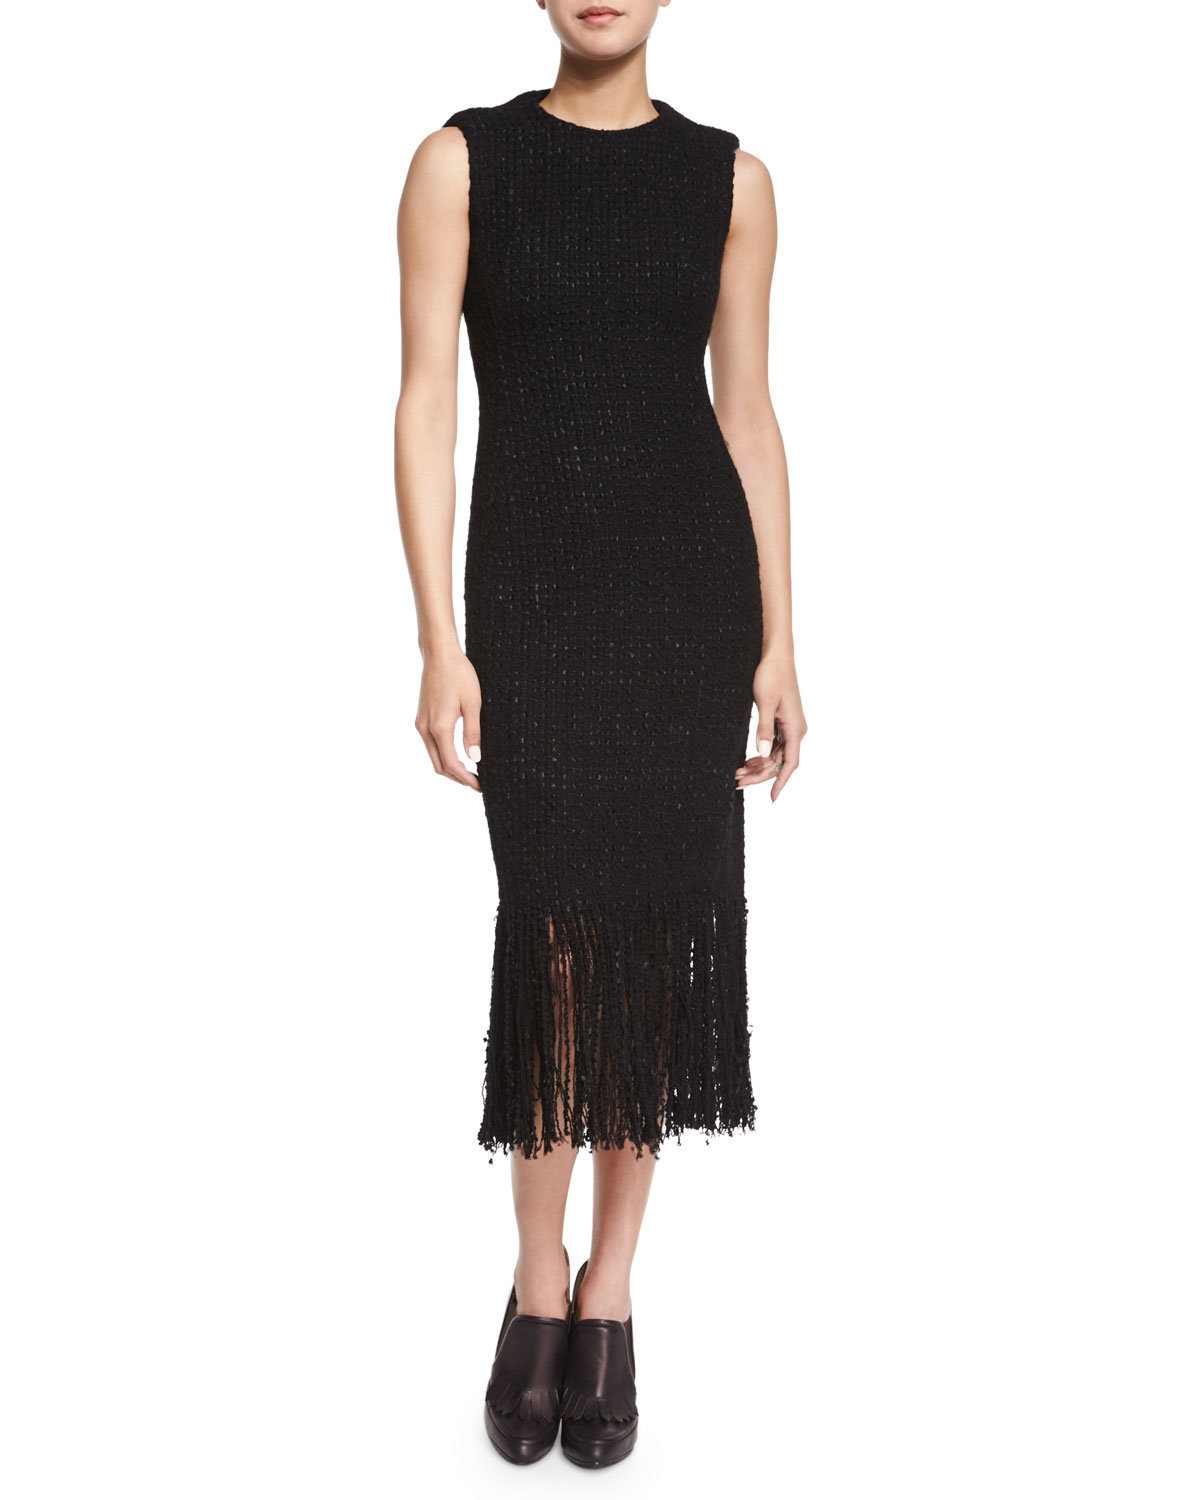 SL FRINGE HEM SHEATH DRESS